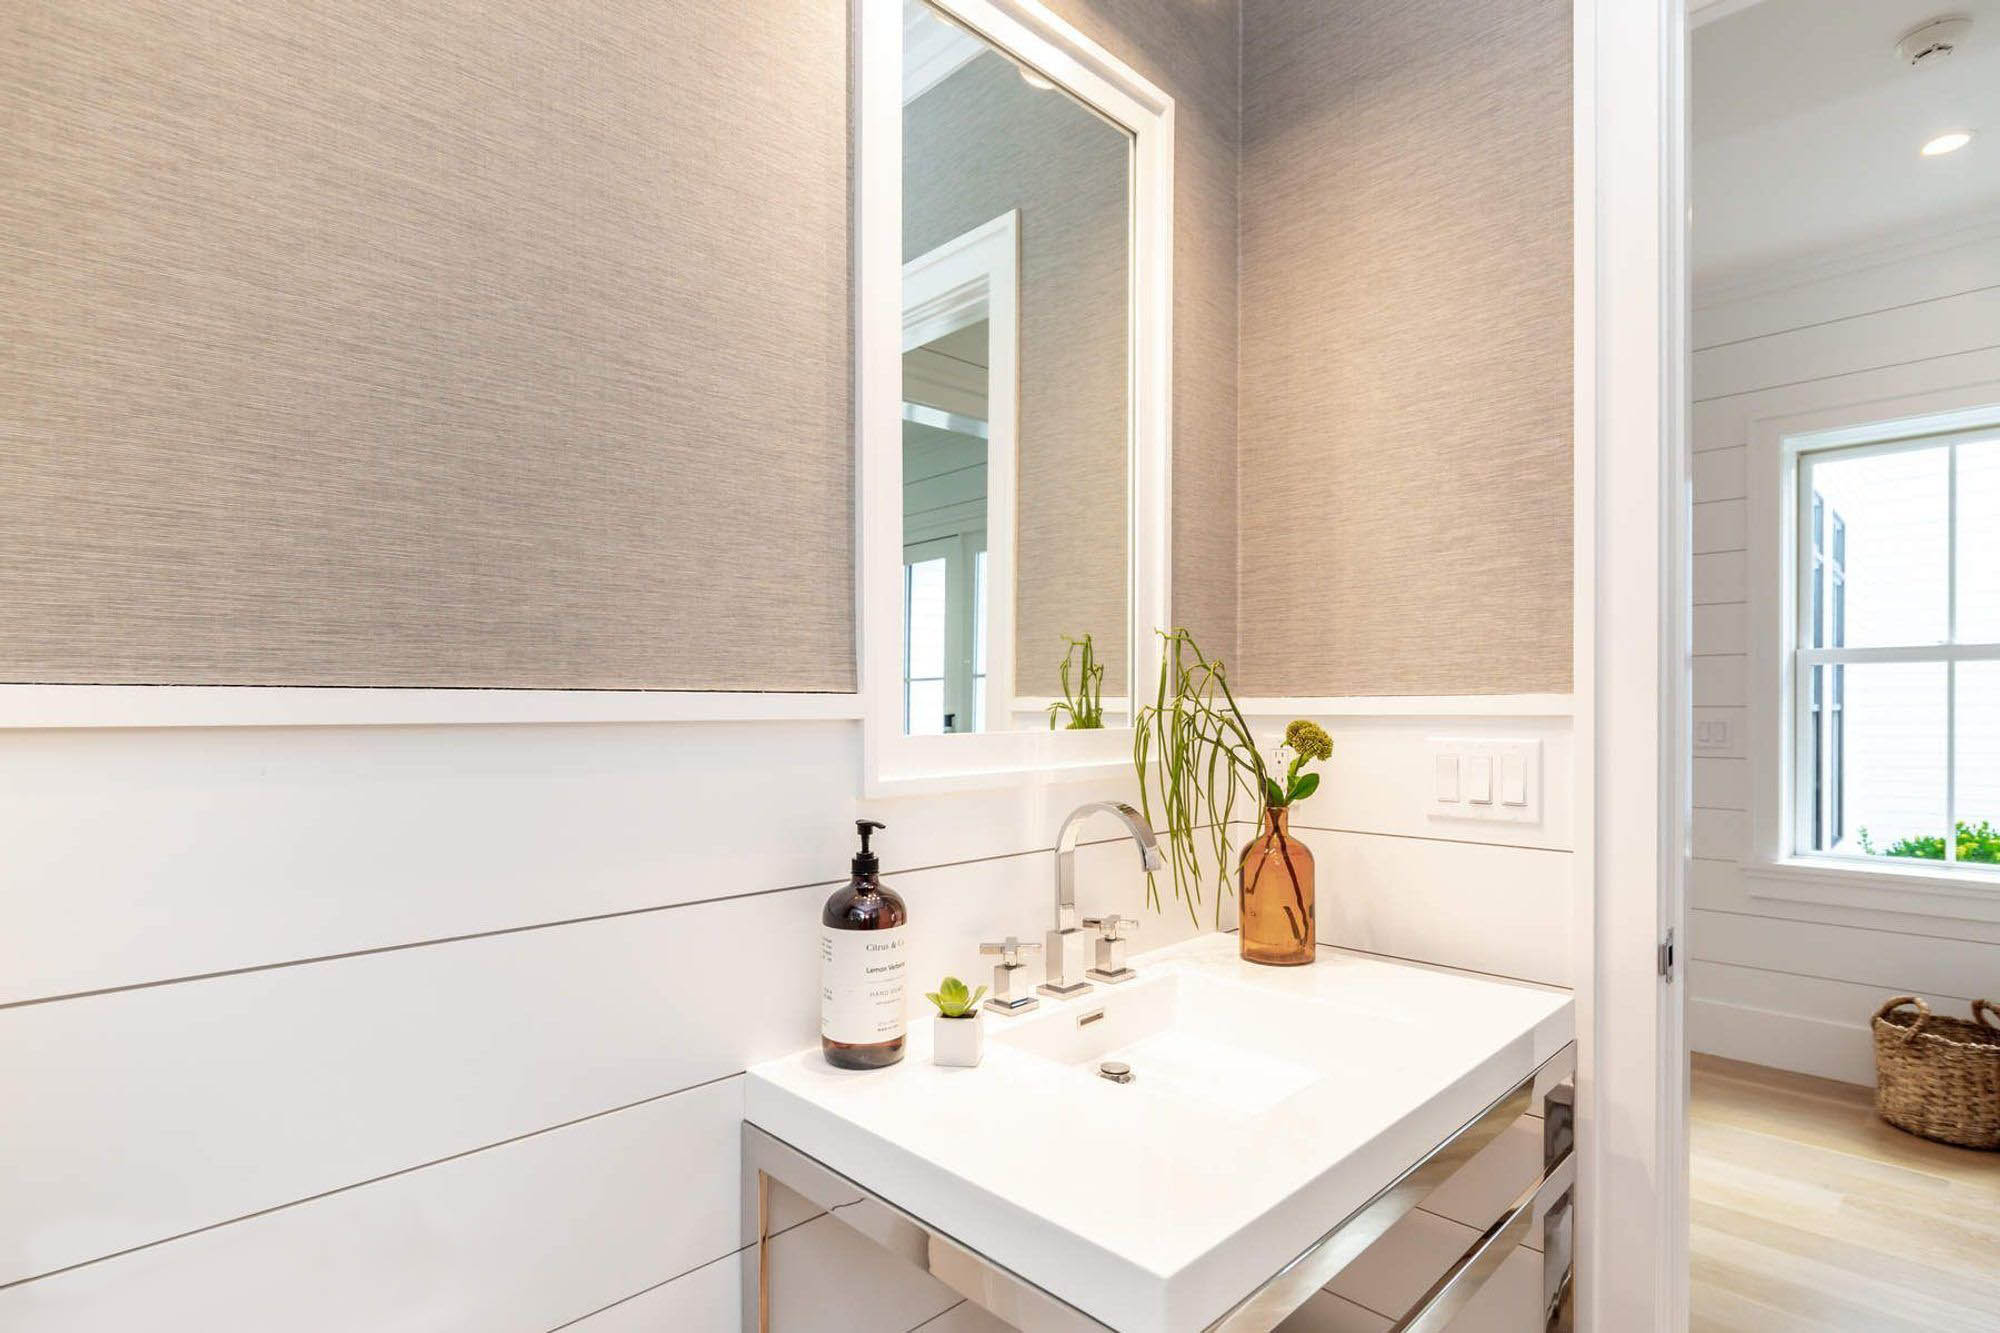 Bathroom shiplap wainscoting wall paneling with warm gray textured wallpaper. White sink with chrome faucet and vanity stand.